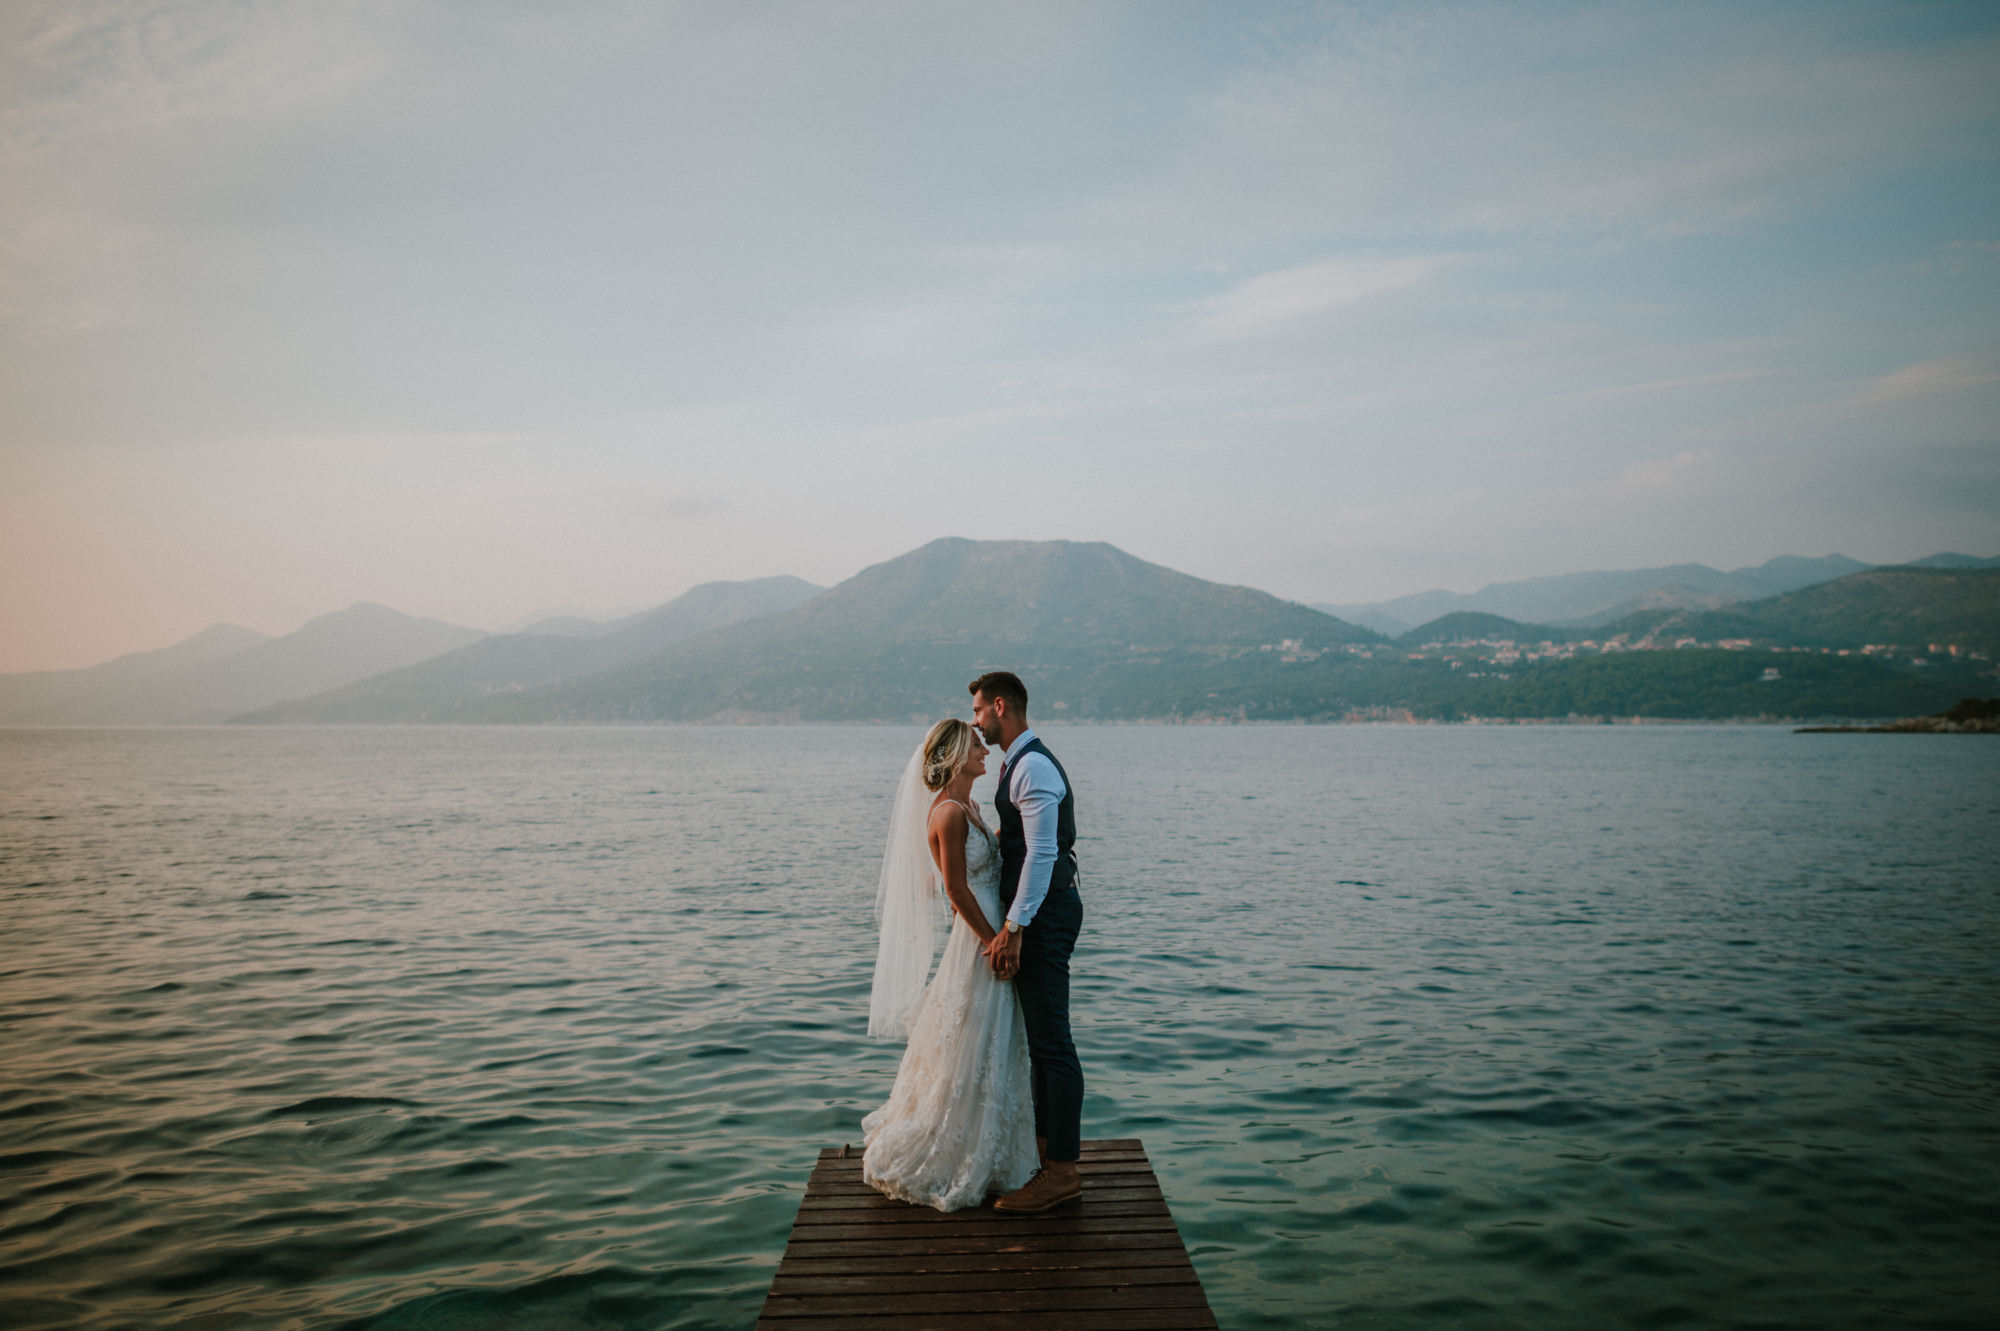 This photo shows a couple on their photoshoot on a peer under Villa Rose restaurant on Kolocep island. In the background is the sea and mountains.